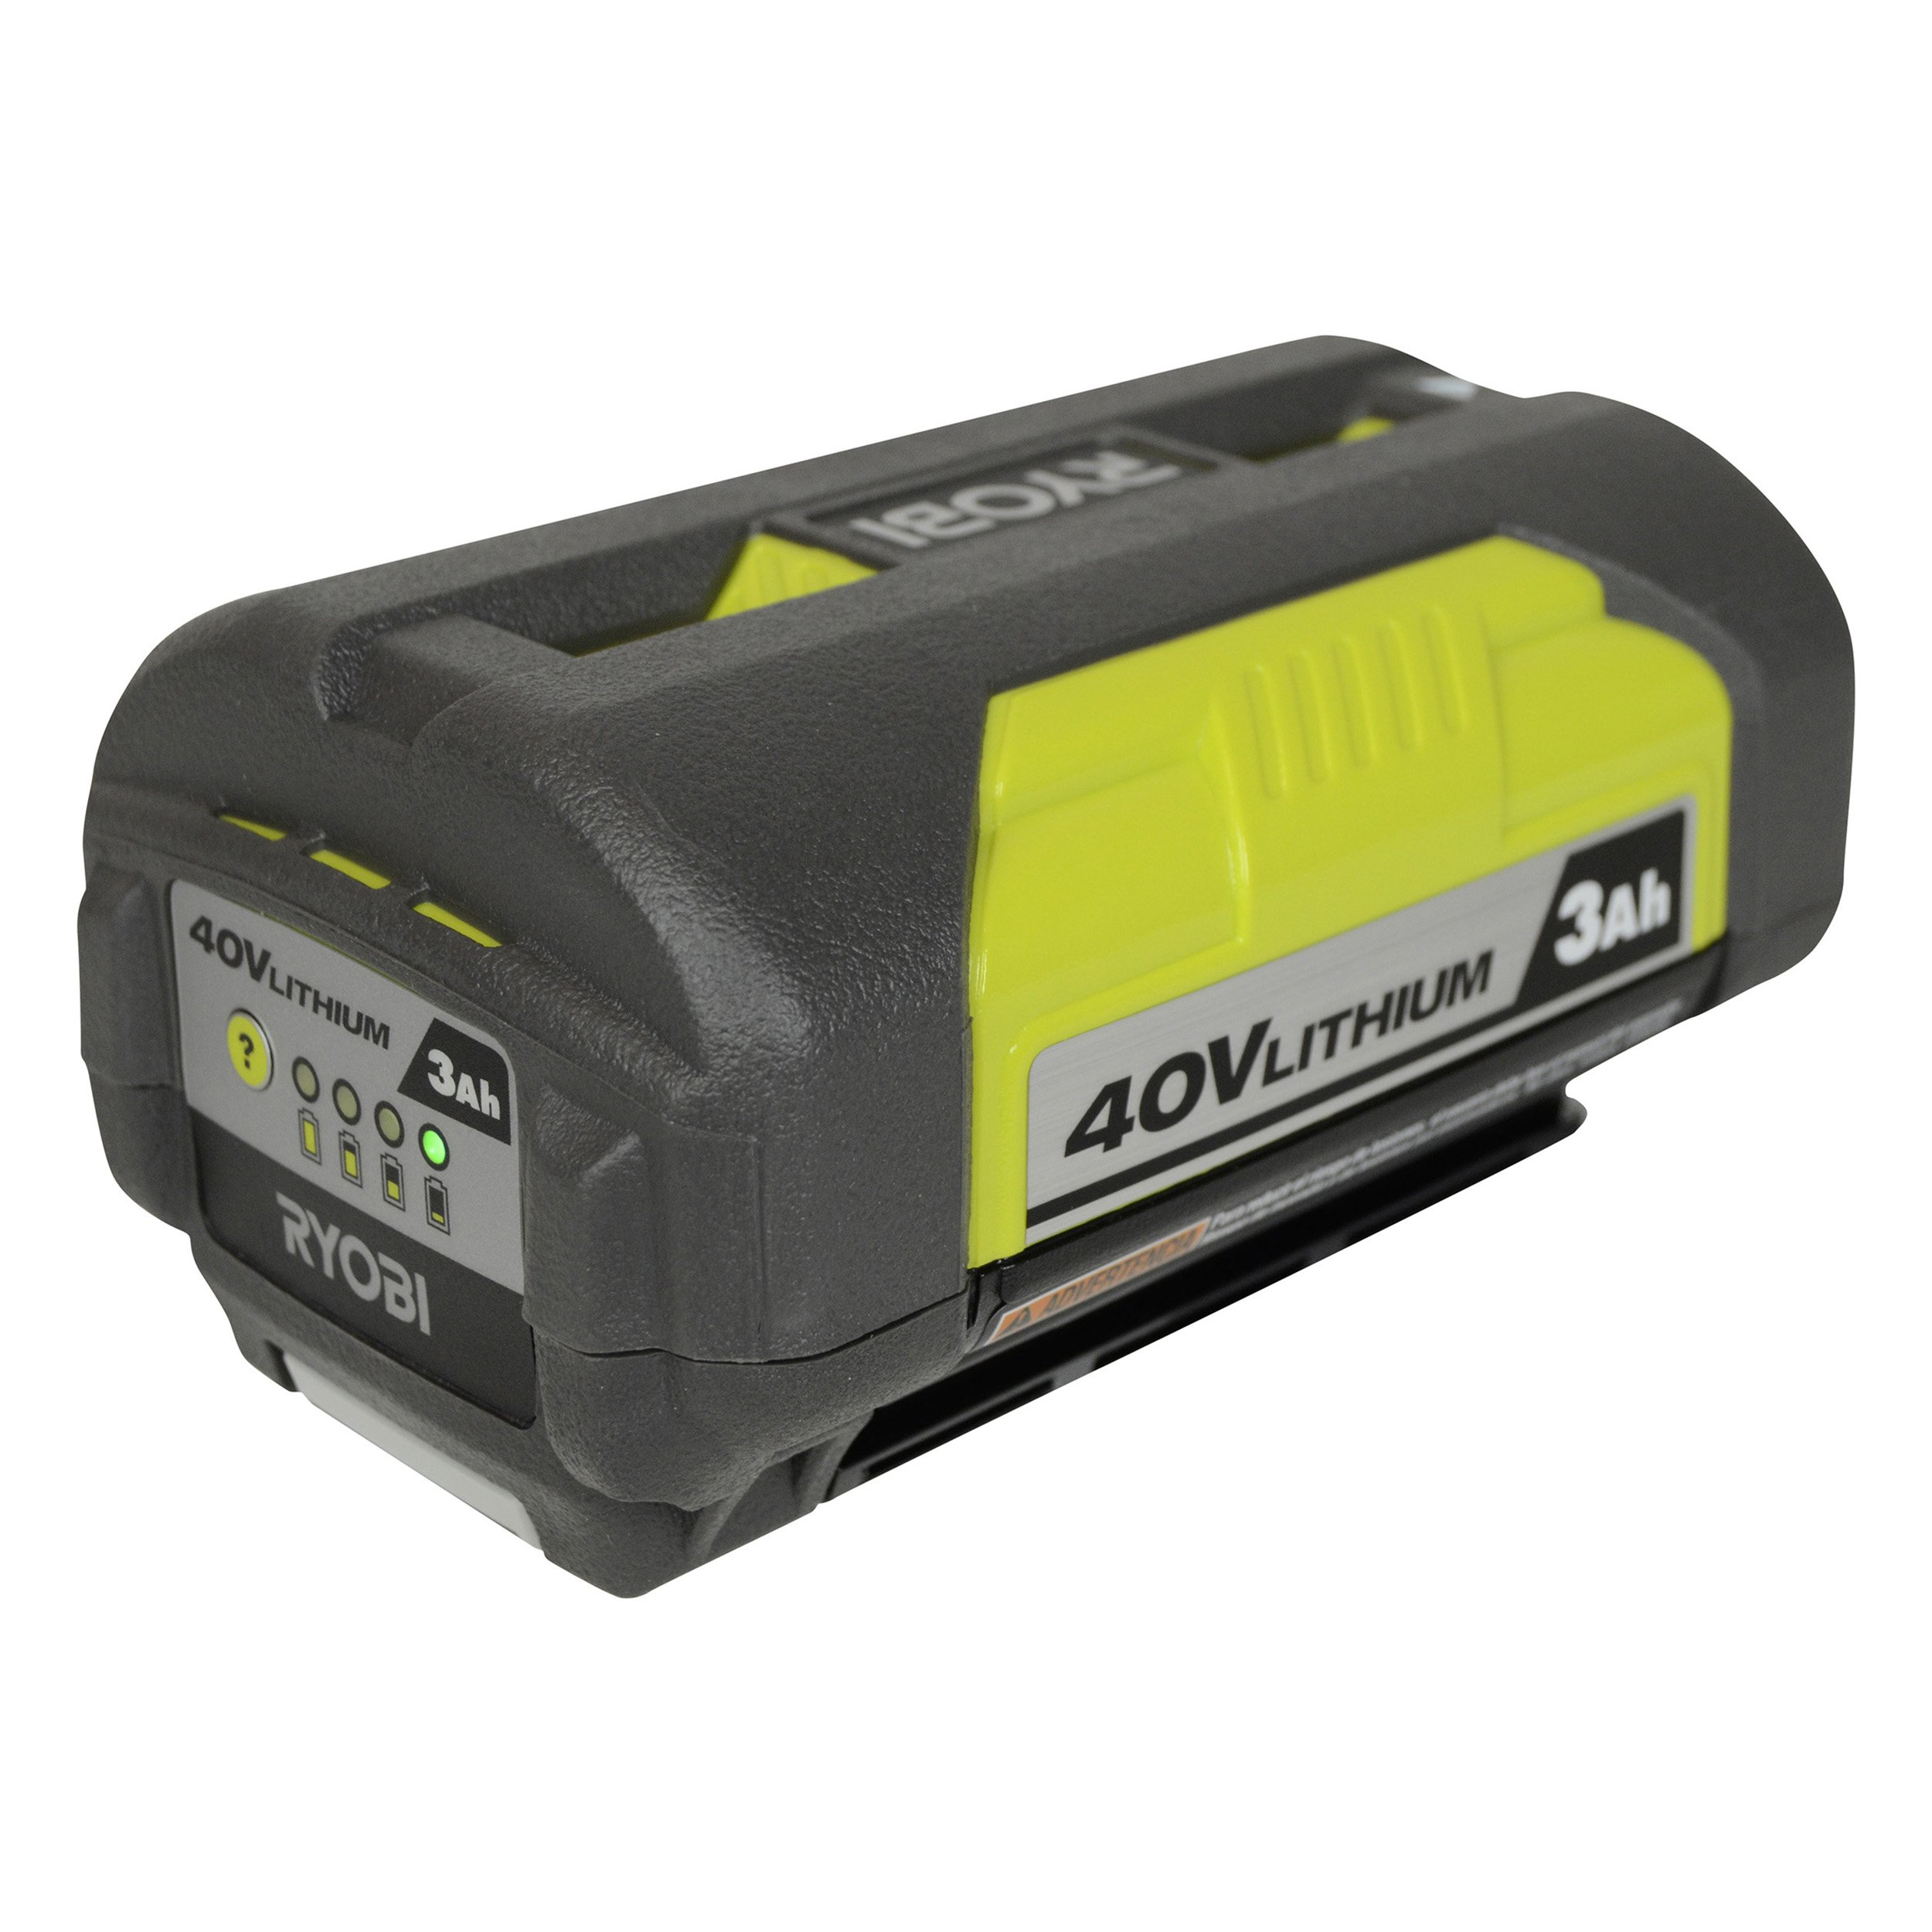 Ryobi OP4030 40V 3.0Ah Lithium ion Battery w/ Fuel Gauge